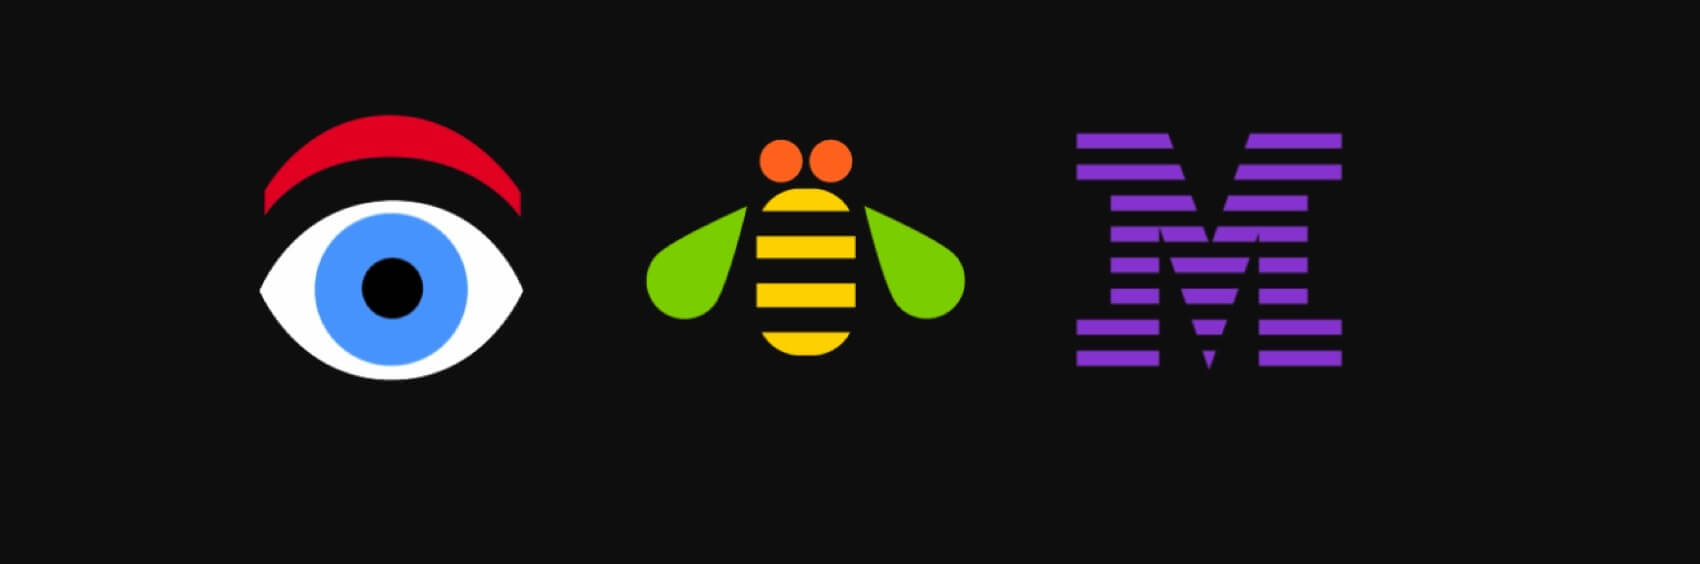 IBM design language